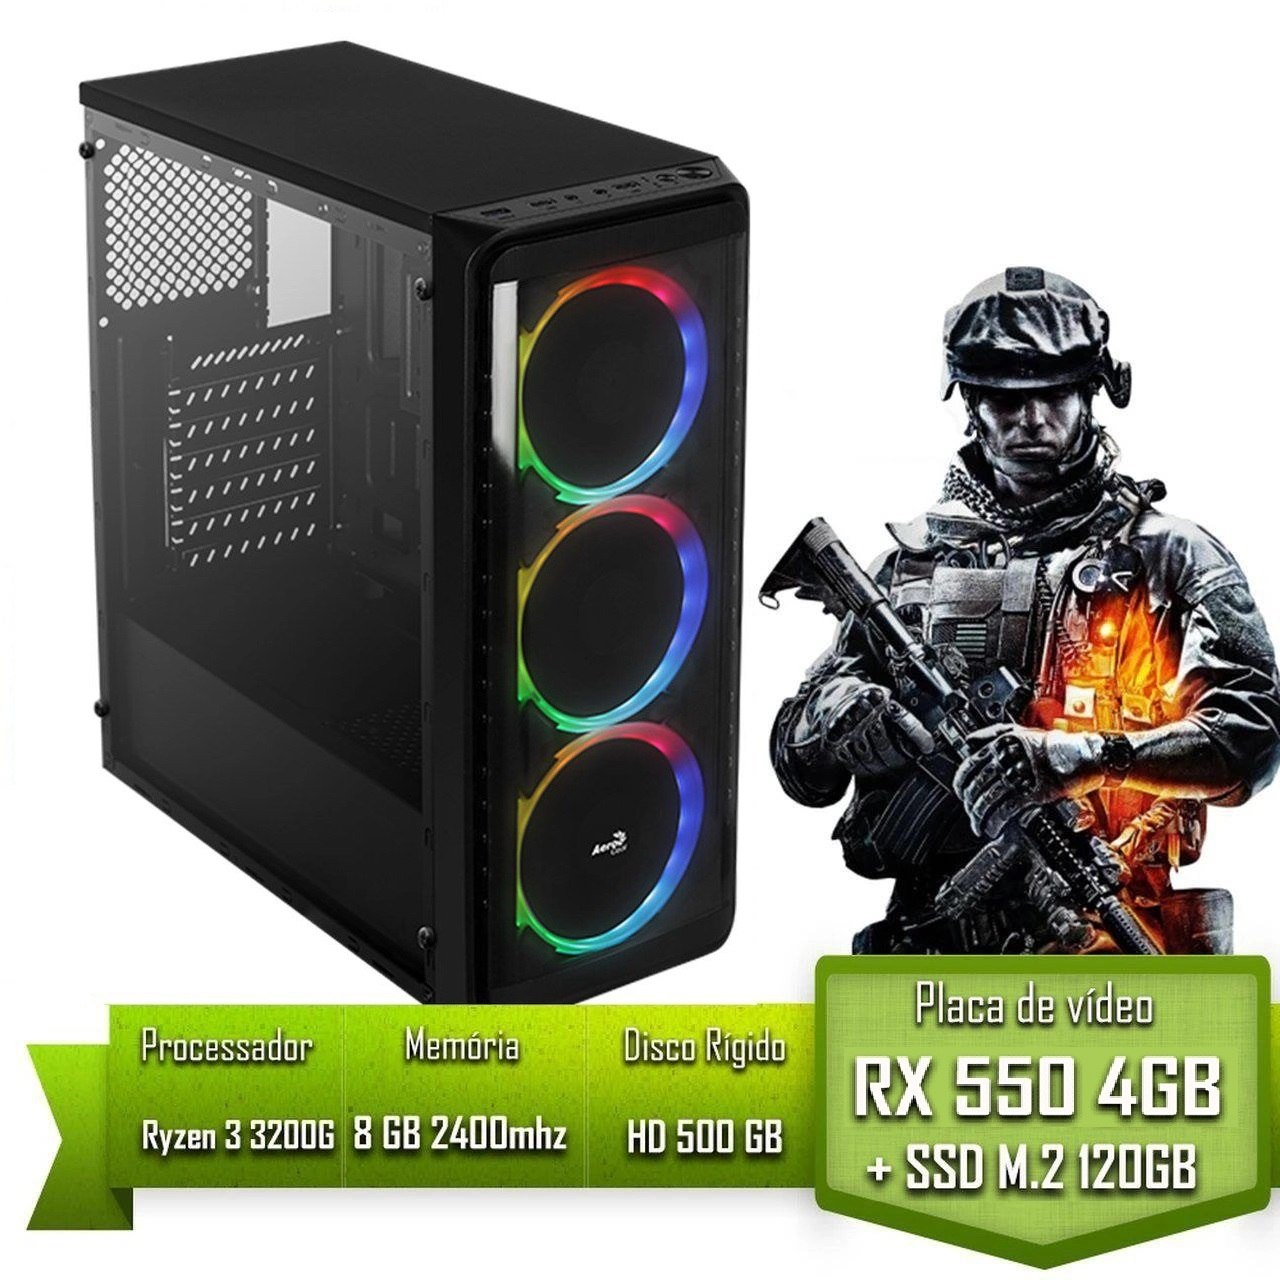 PC GAMER ALLIGATOR GAMING AMD RYZEN 3 3200G / 8GB 2400MHZ / RX 550 4GB / SSD 120GB M.2 /HD 500GB